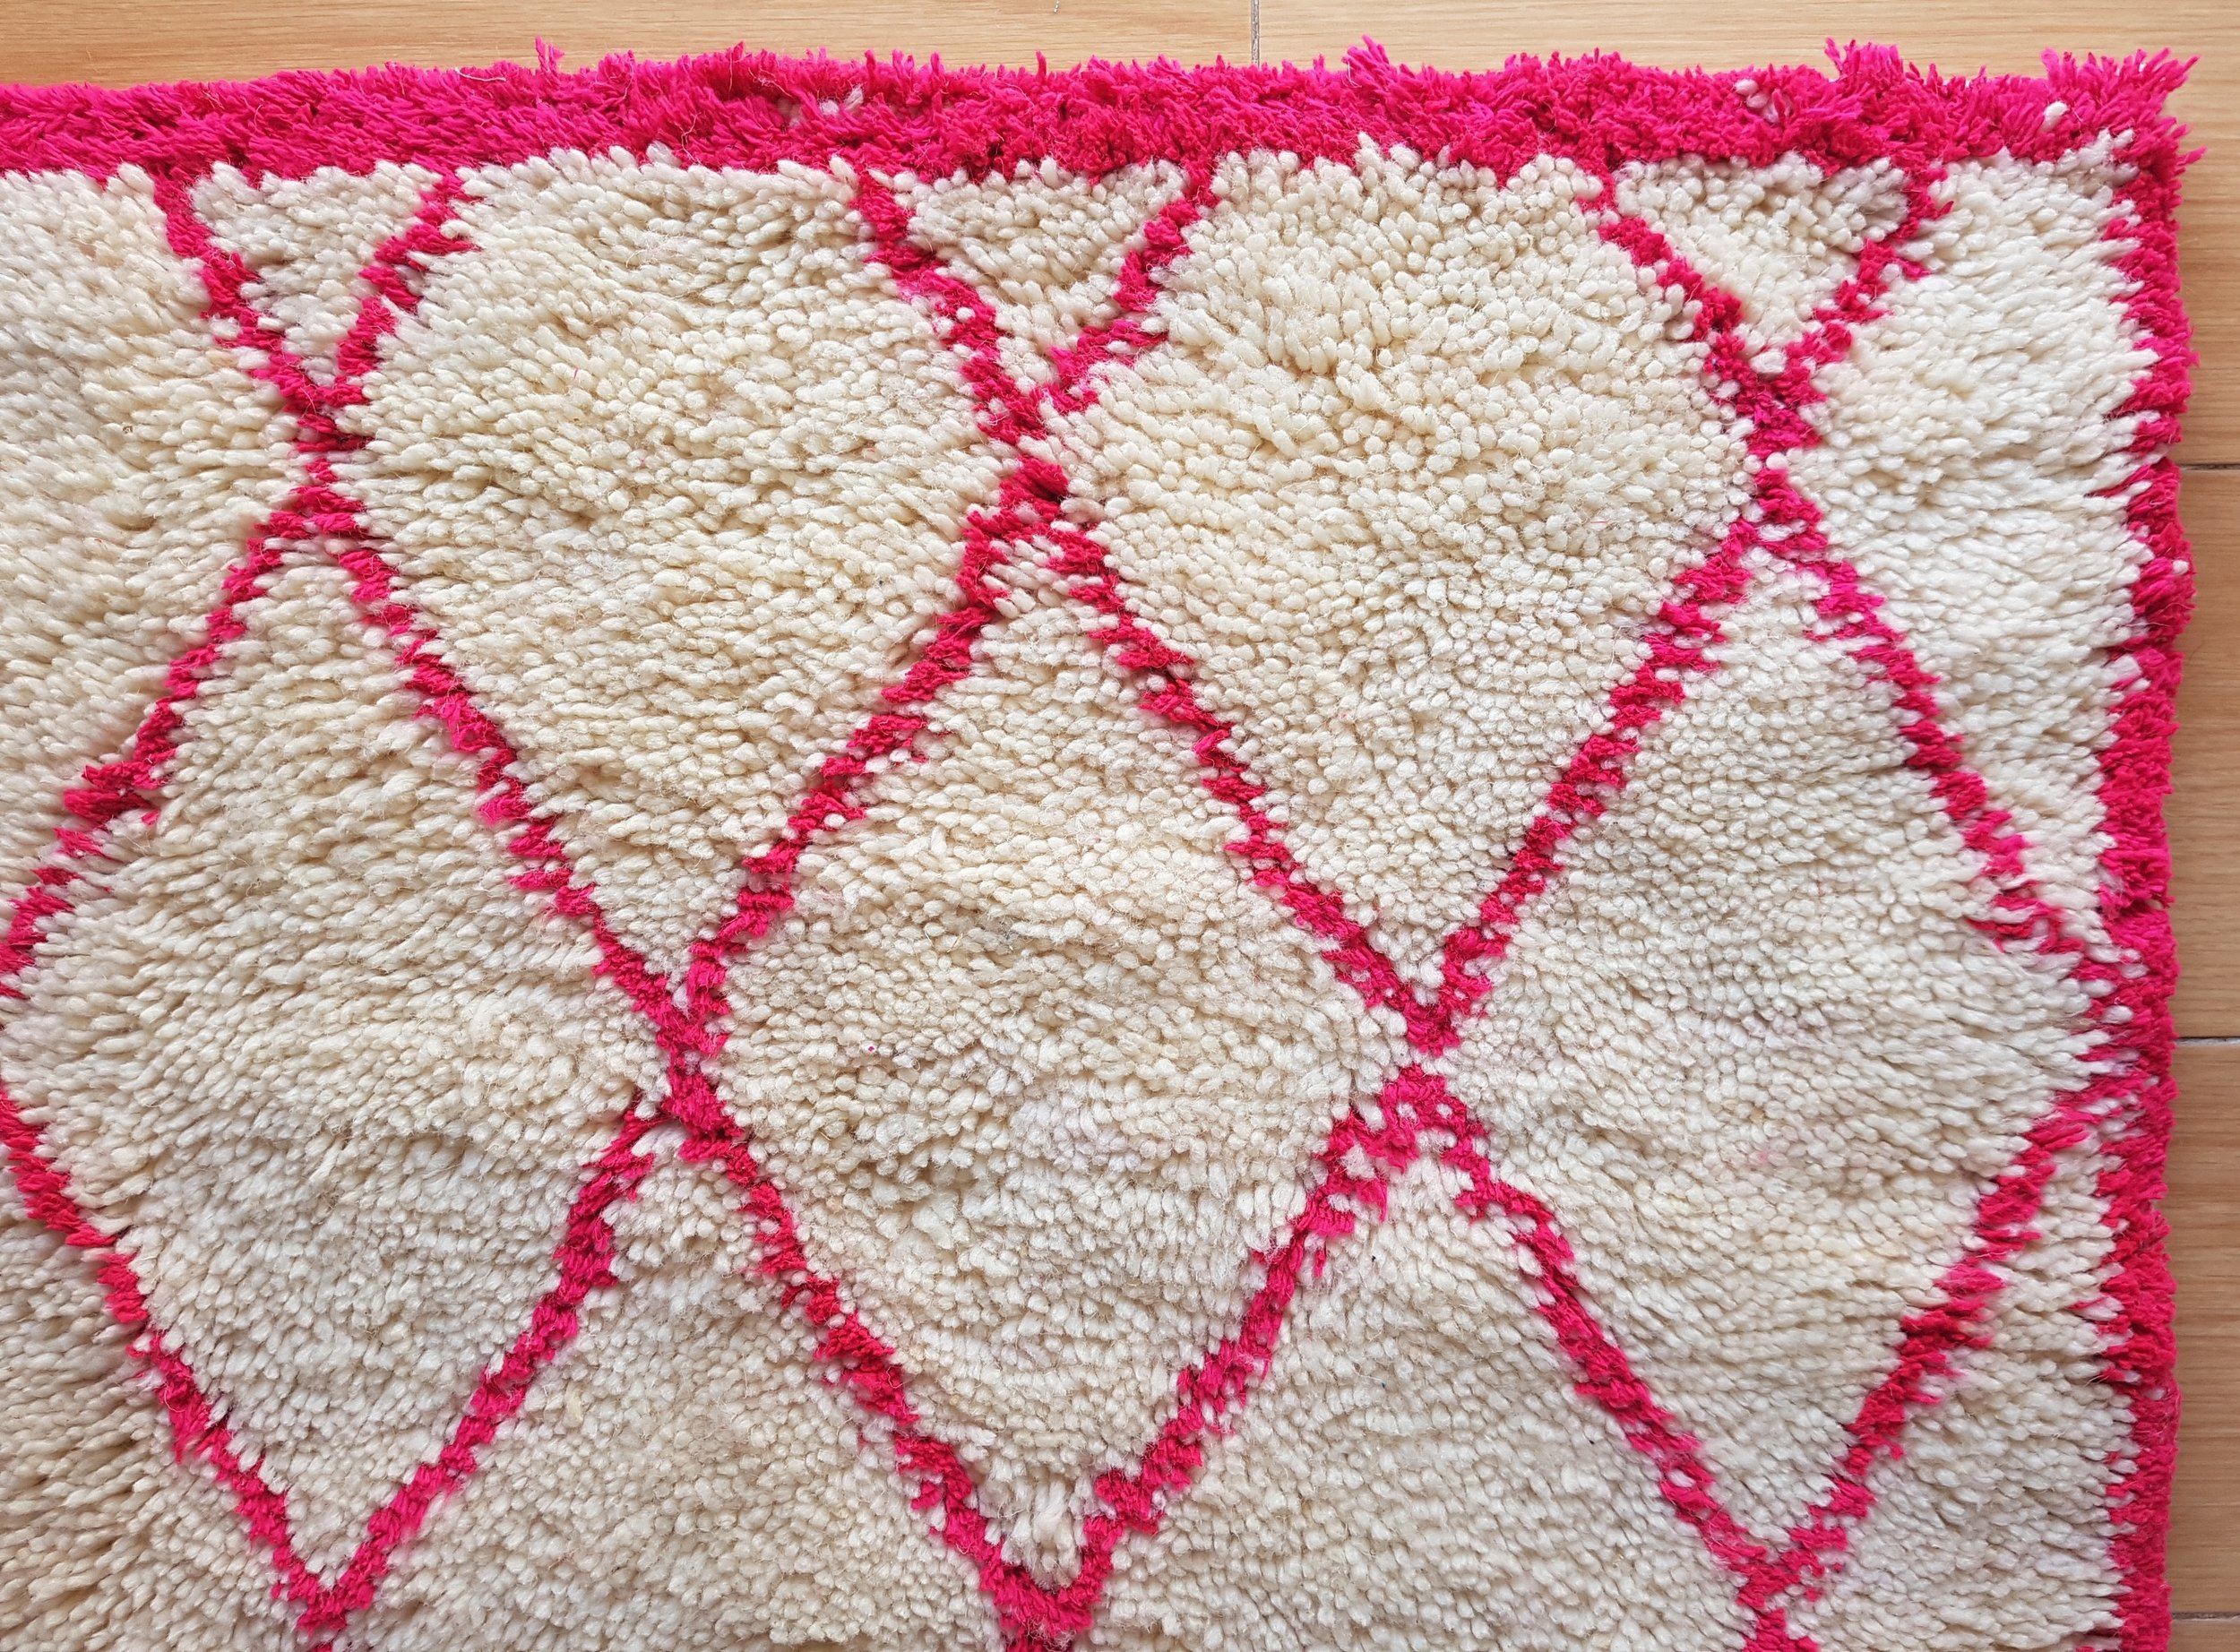 Hot Pink Beni Ourain Rug Moroccan Rugs Occidentally In Love